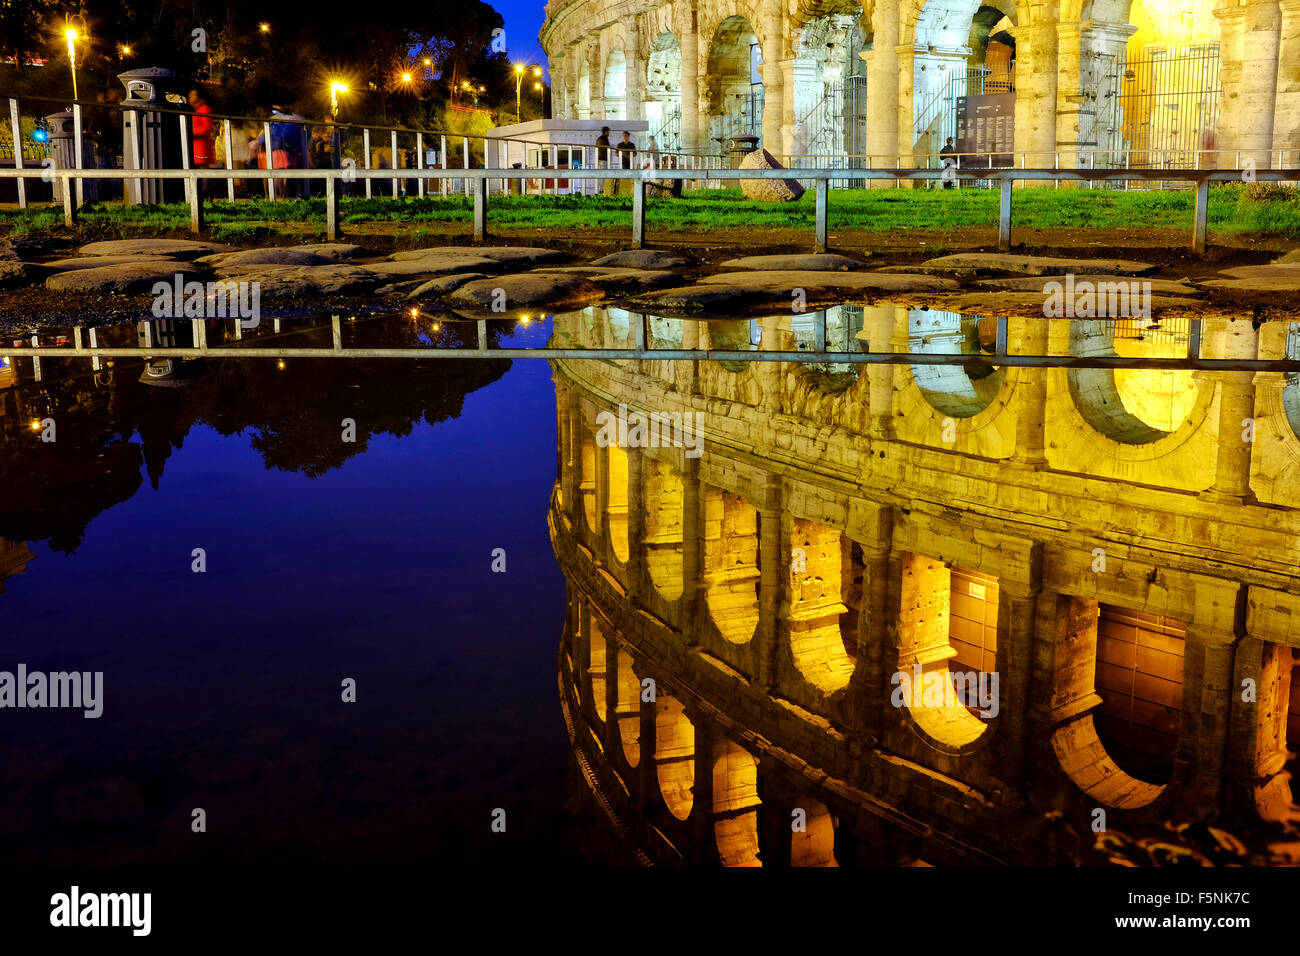 Reflection of the colosseum in the water of a puddle, Rome Italy - Stock Image